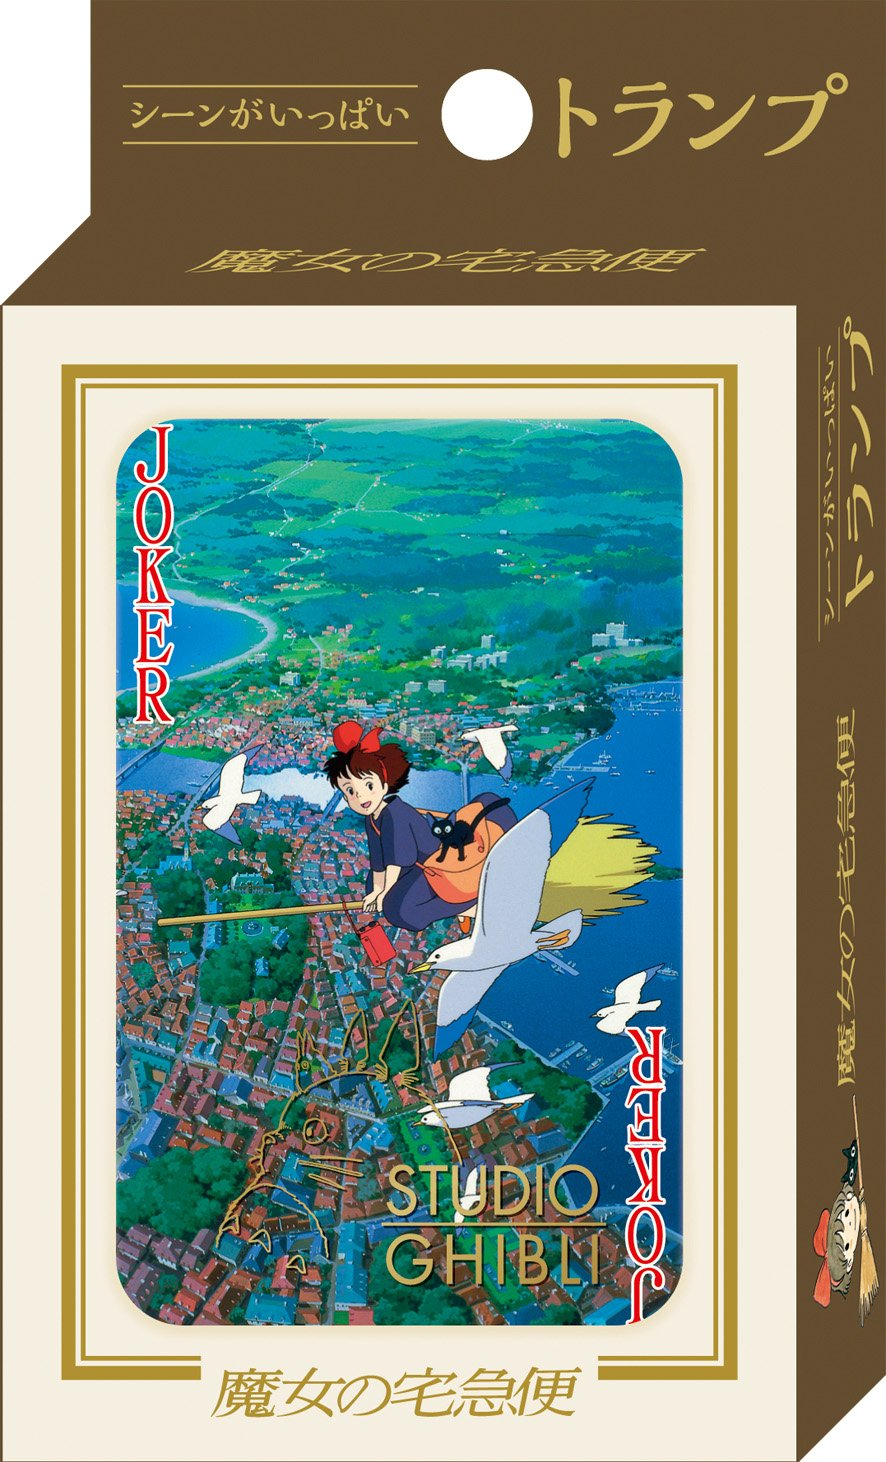 Studio Ghibli via Bluefin Playing Cards - Kiki's Delivery Service Part 2 (BLFENS18196)